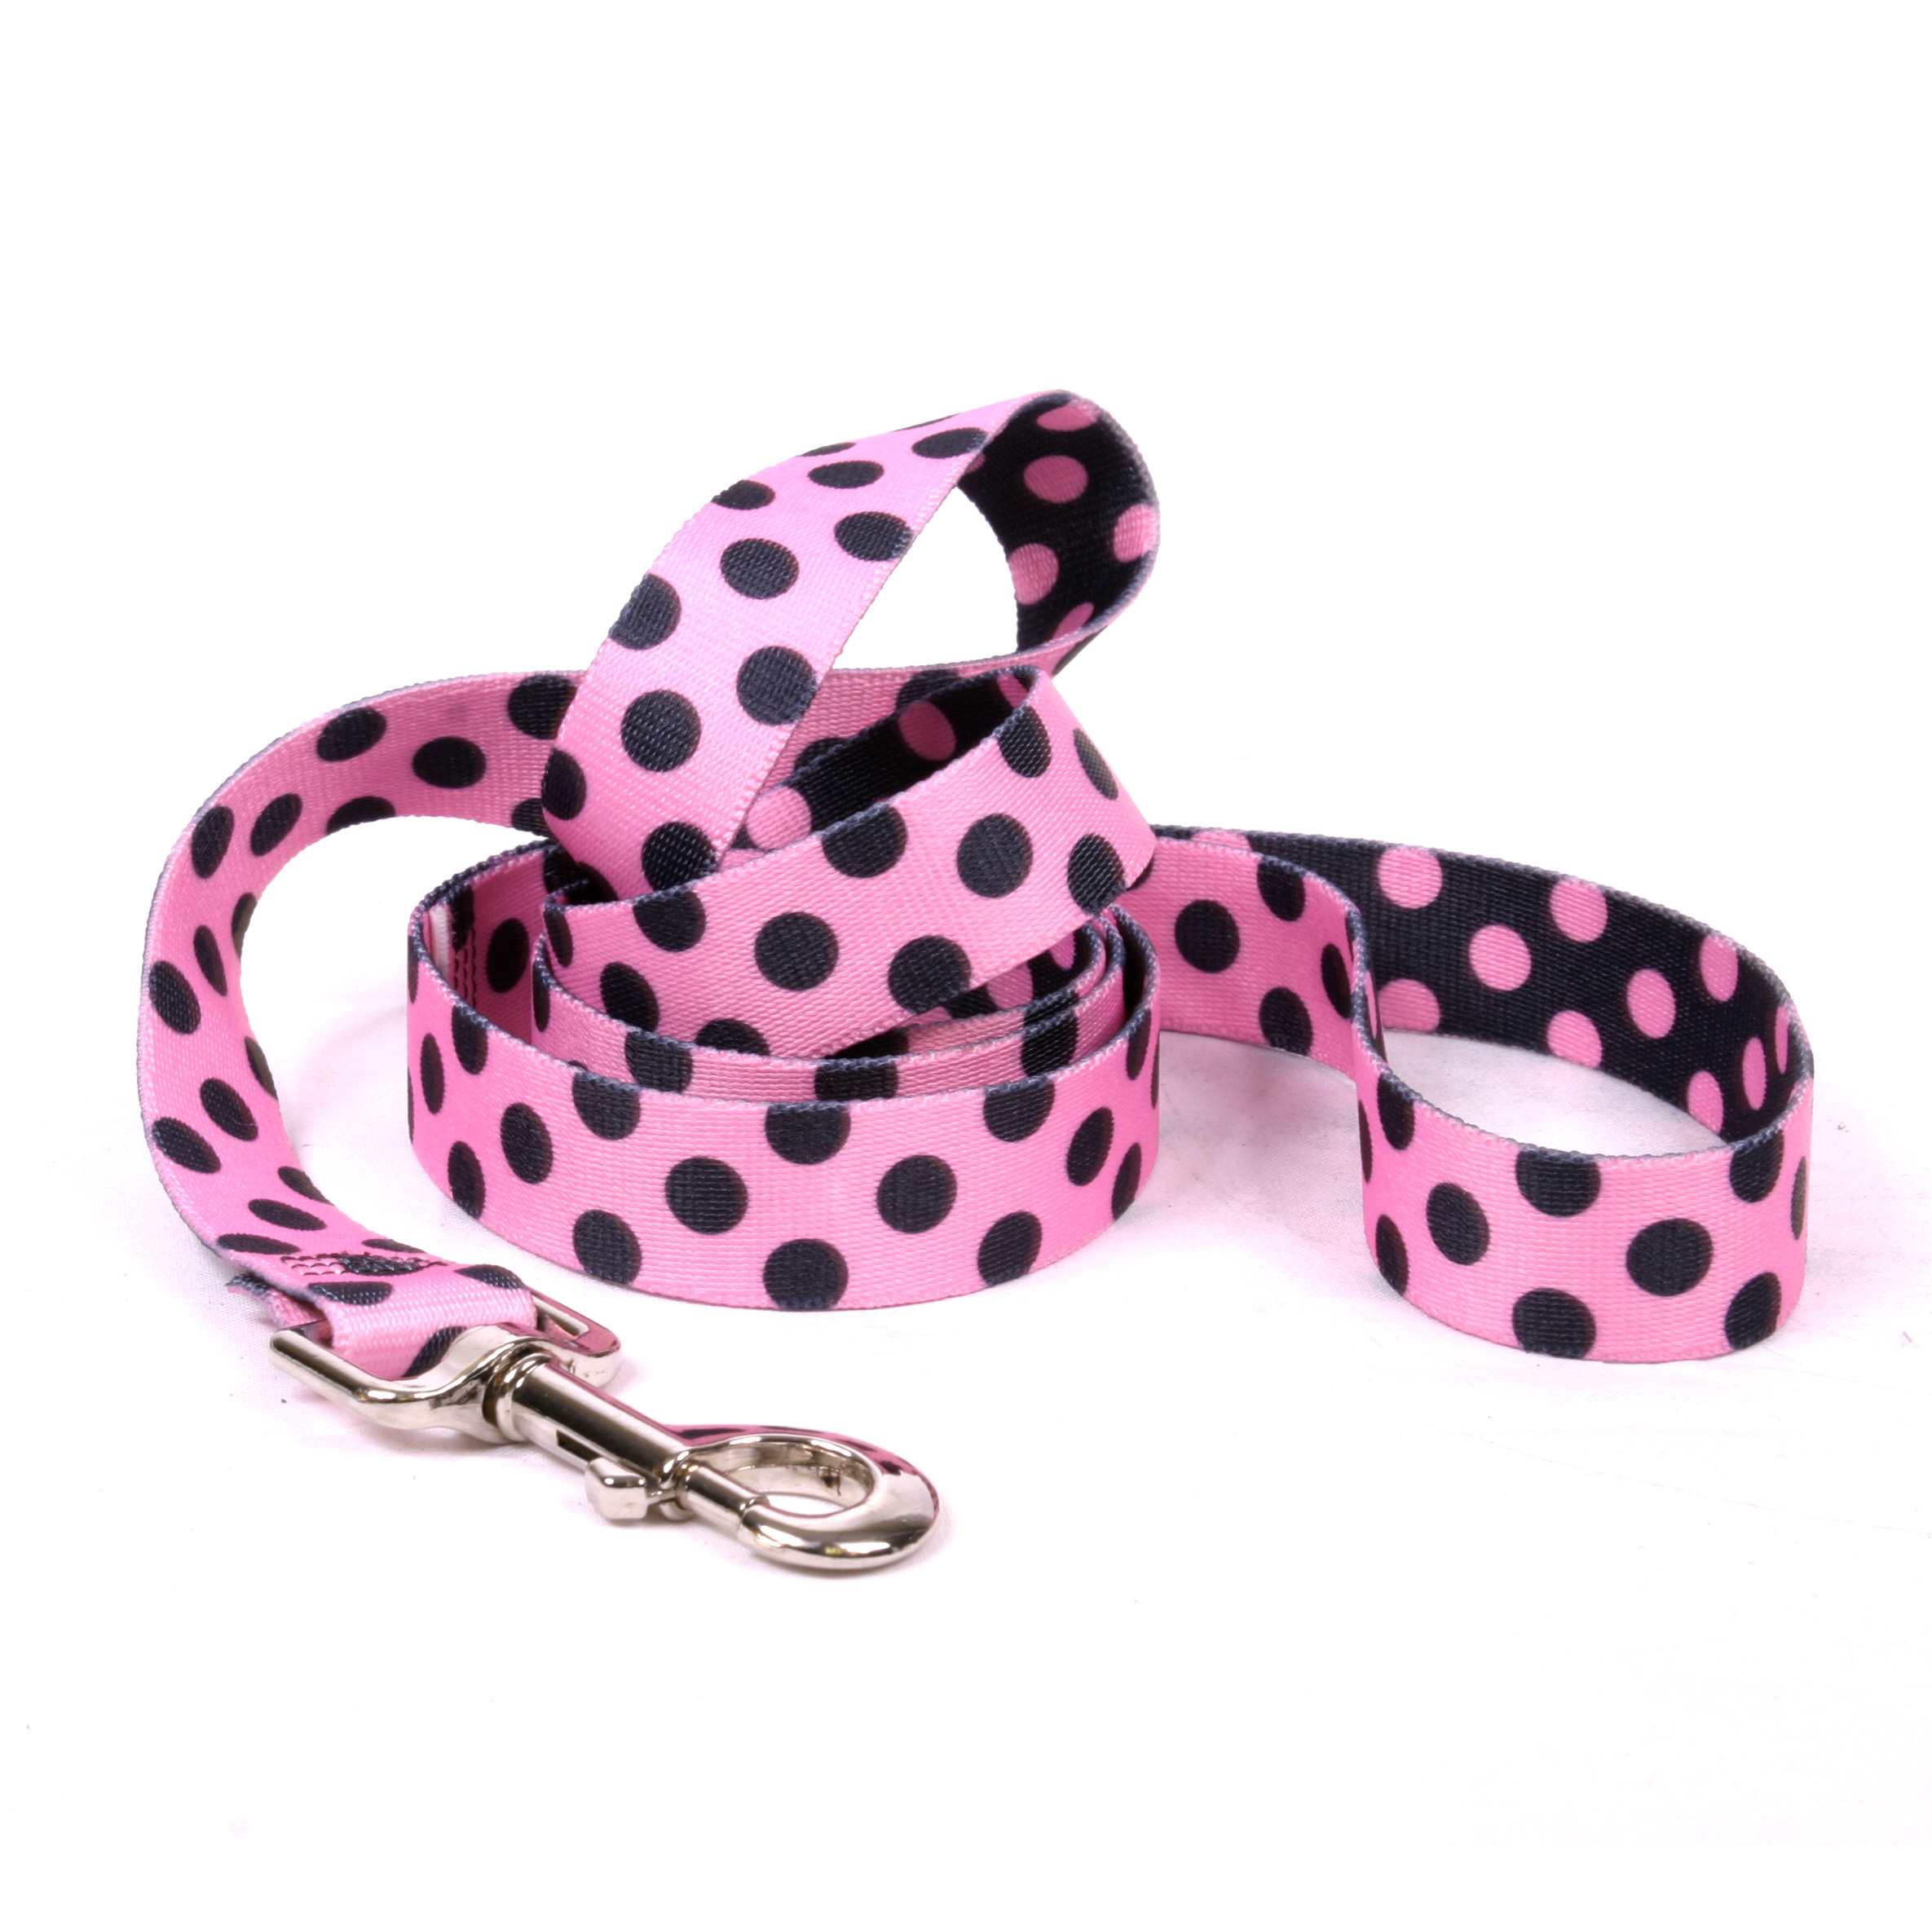 Pink and Black Polka Dot Lead